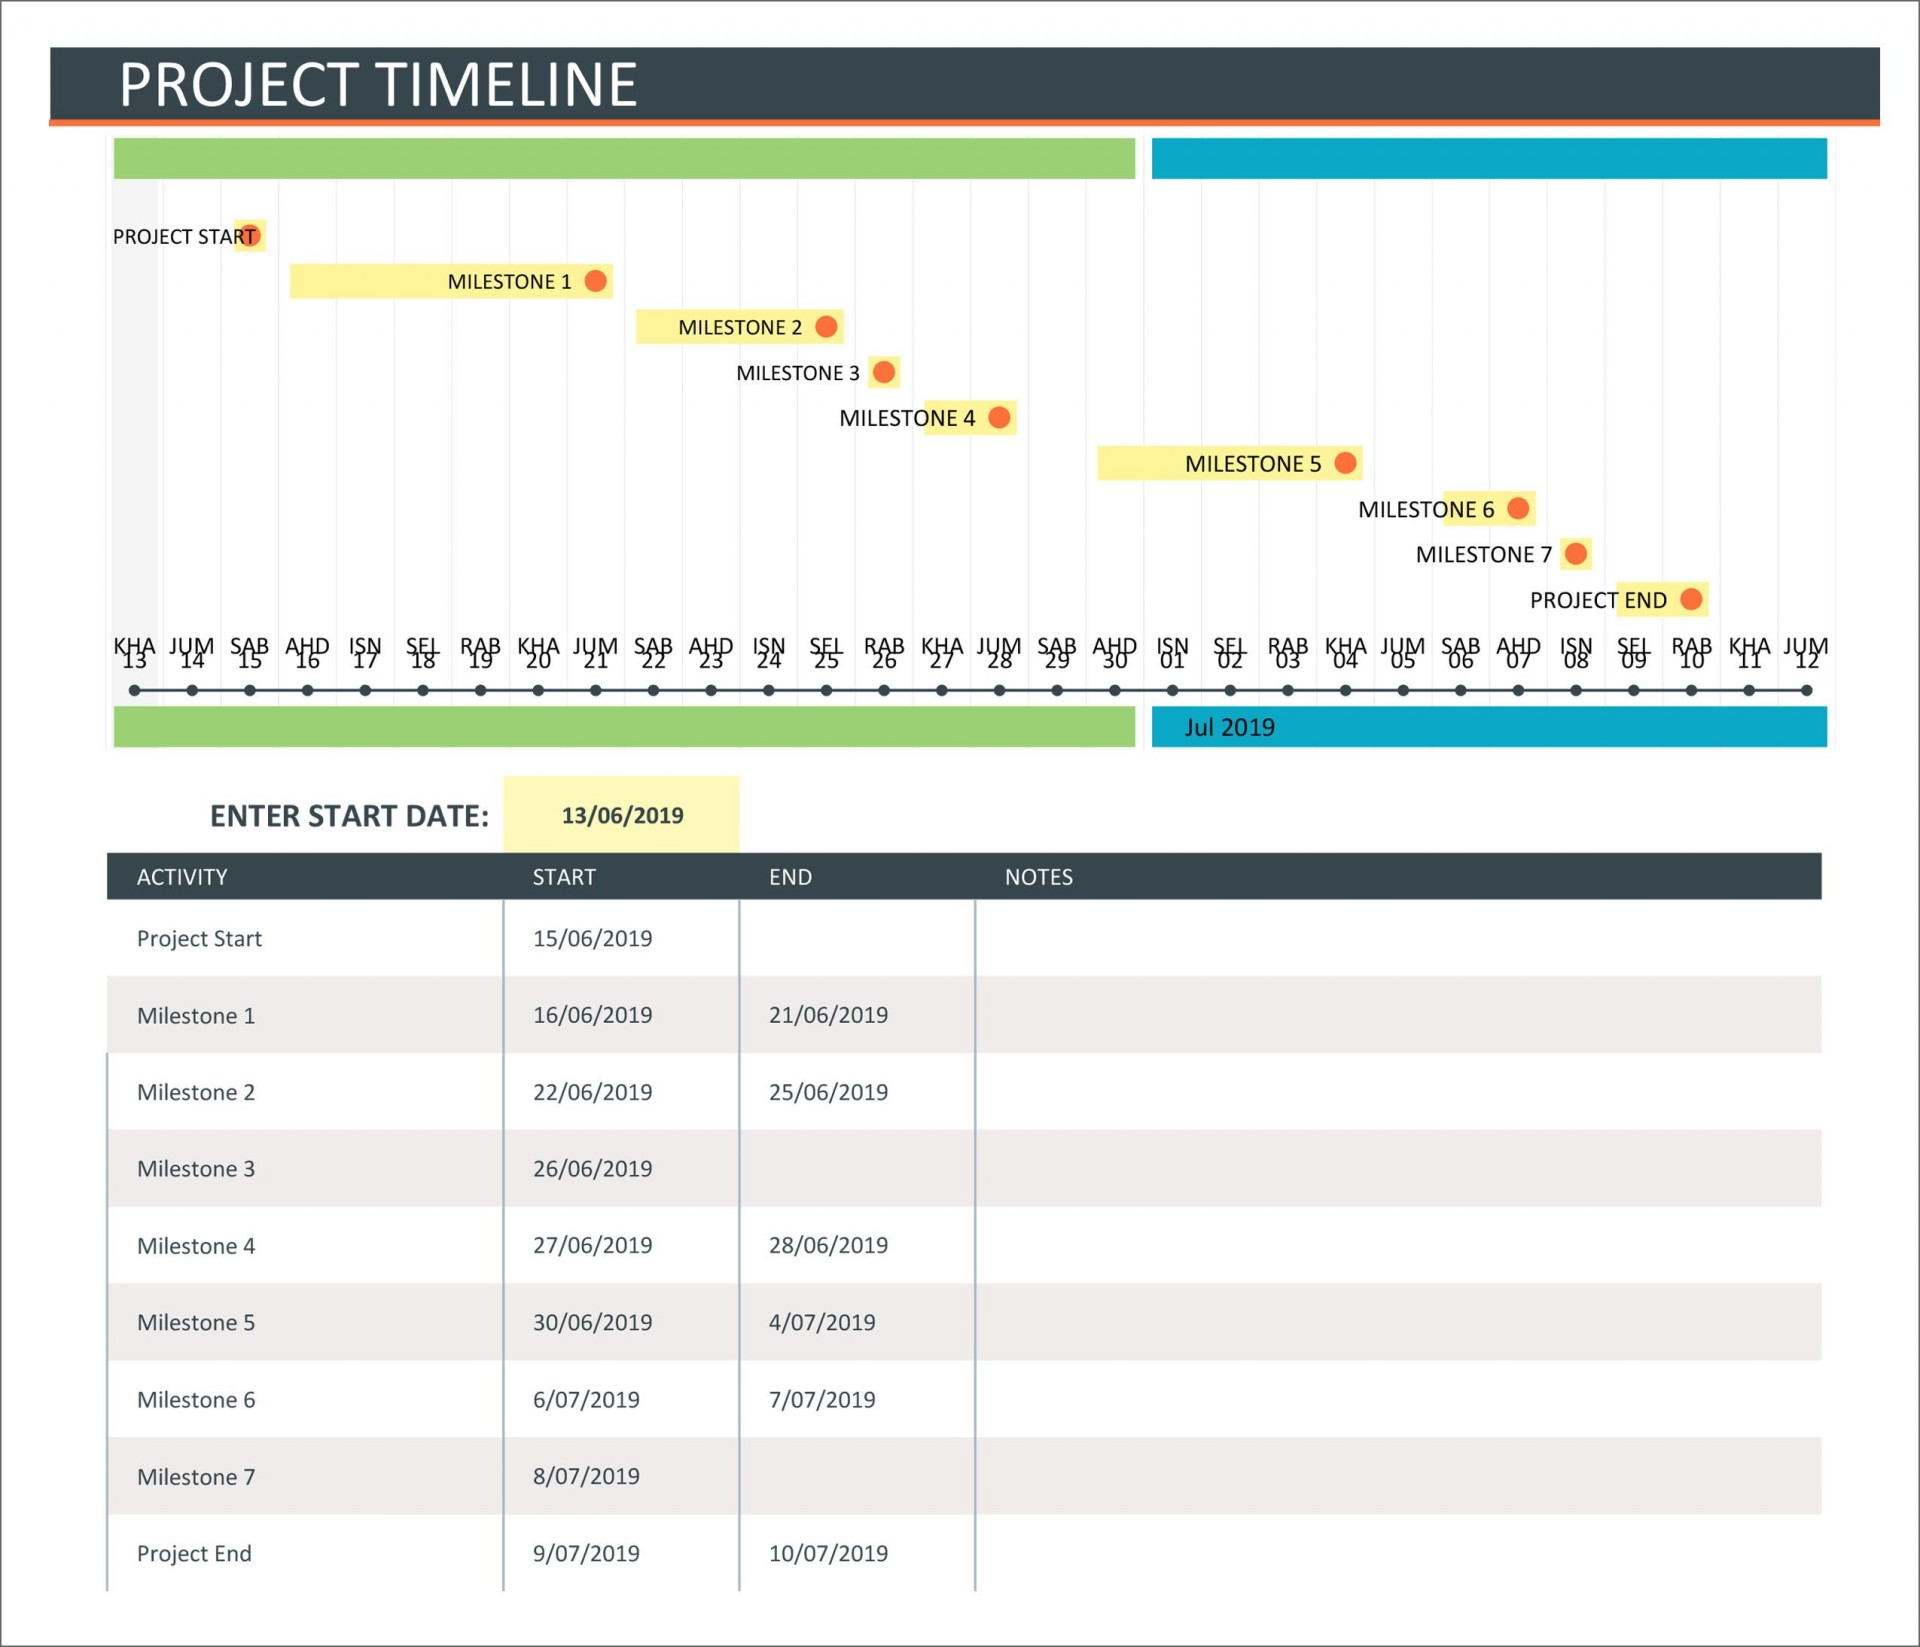 001 Unforgettable Microsoft Excel Timeline Template High Def  Templates Project Free Download1920